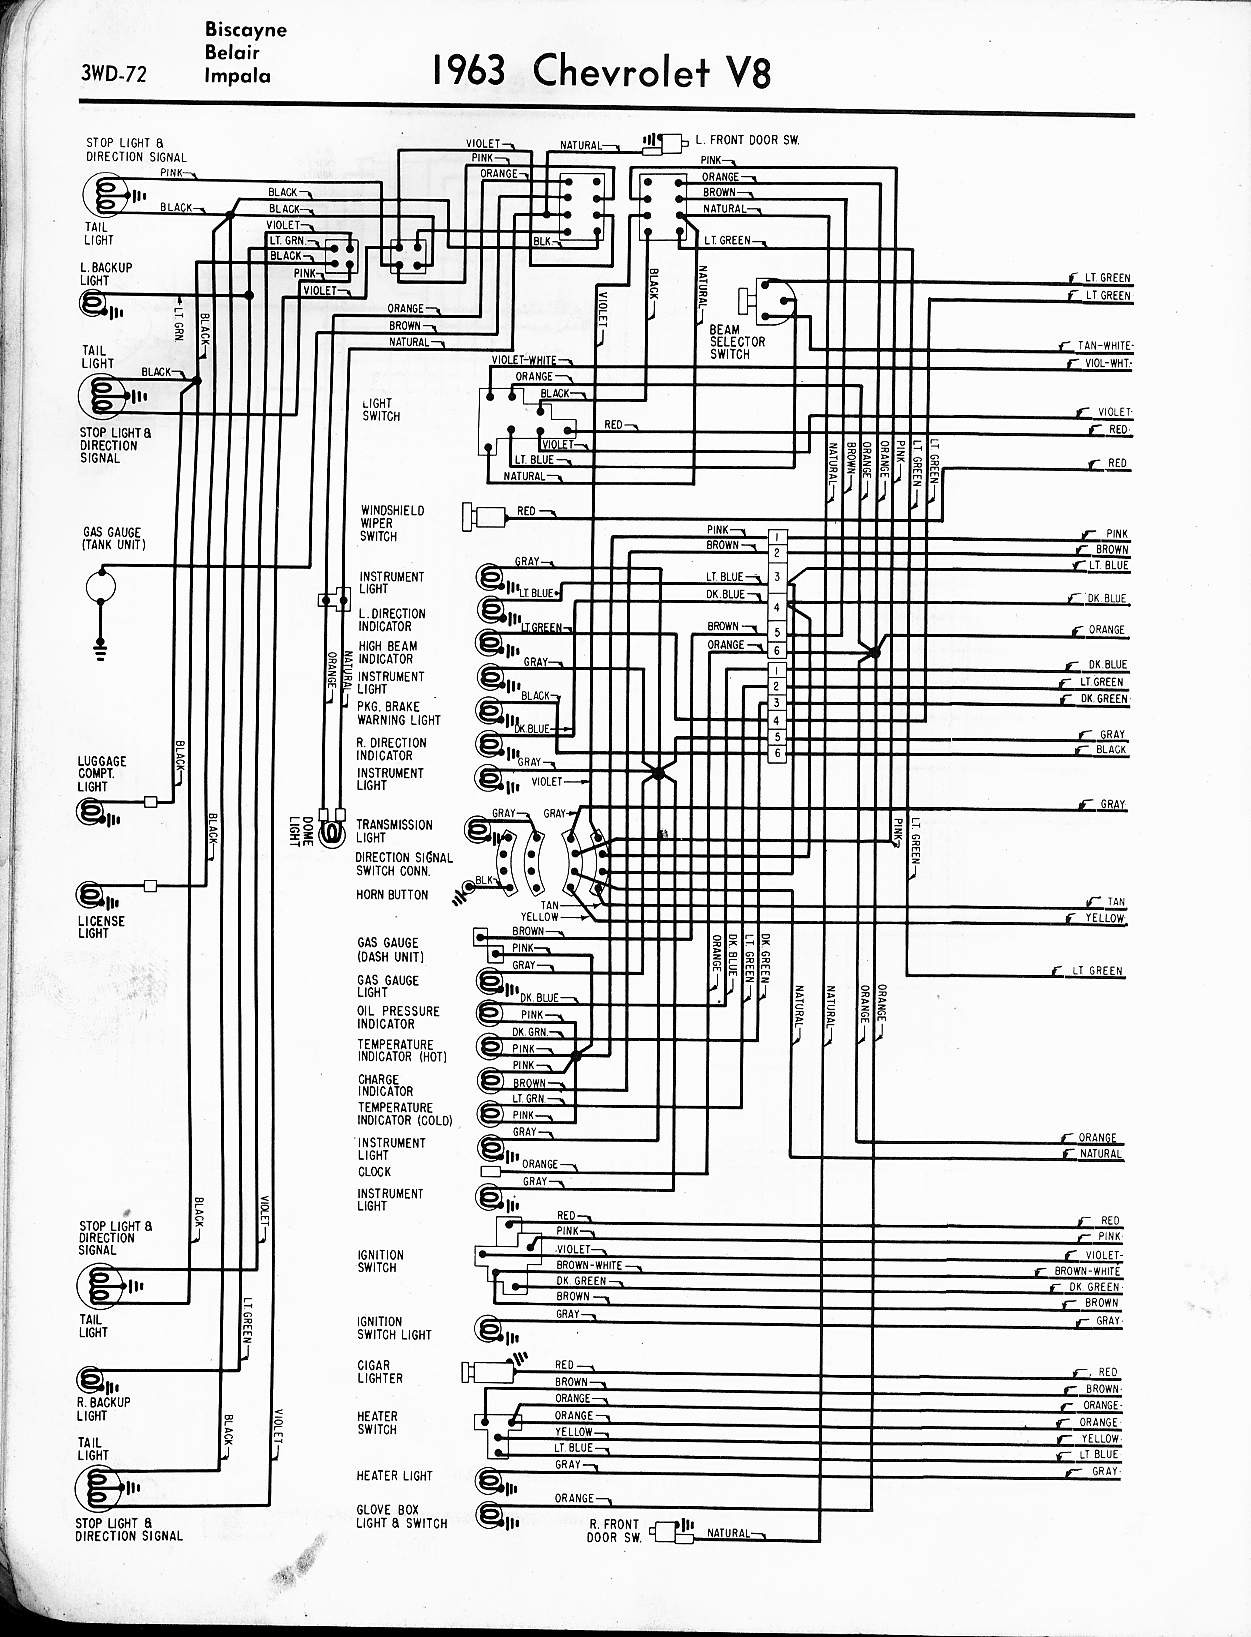 2002 Impala Wiring Diagram Chevrolet Chevy Sedan 1964 Chevy Impala Ss Wiring Harness Diagram Of 2002 Impala Wiring Diagram